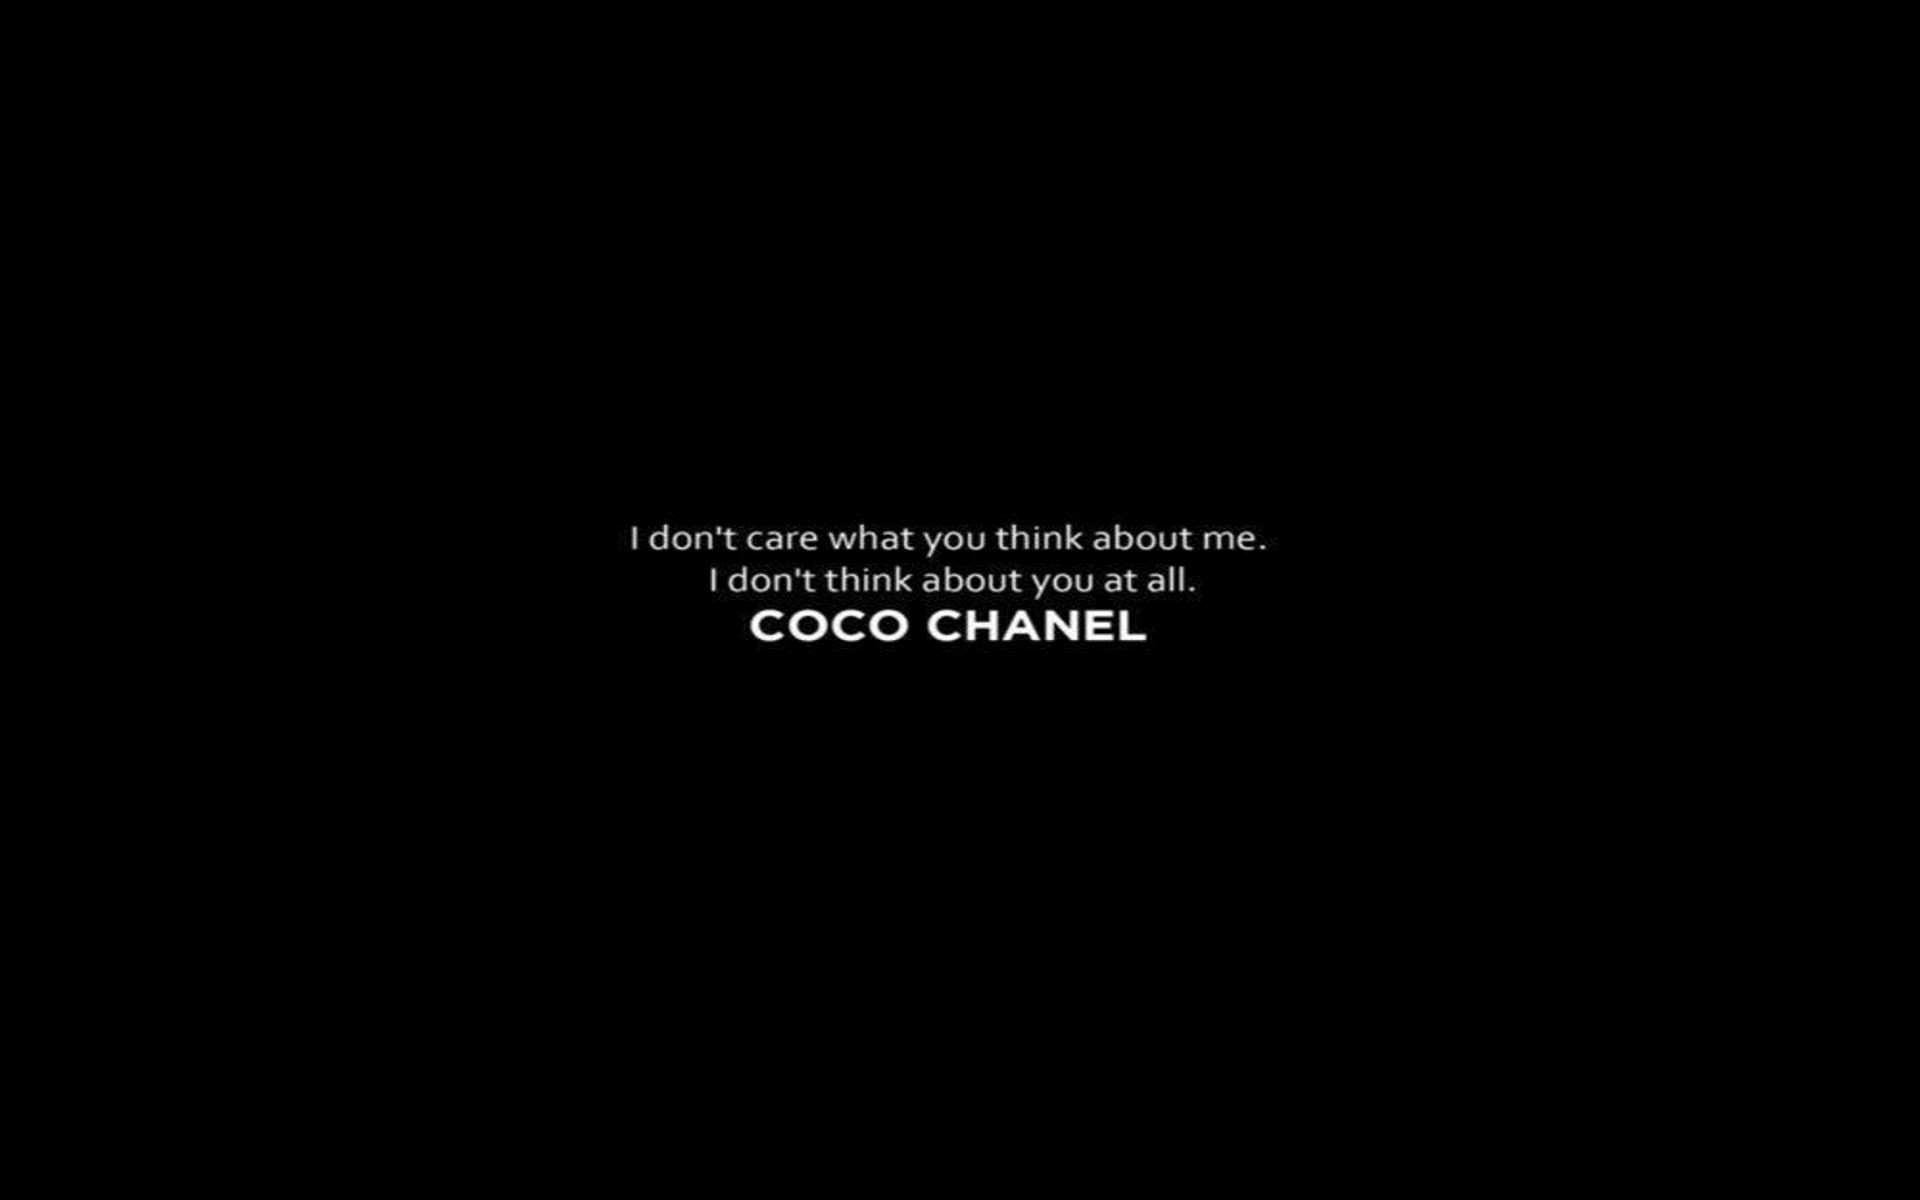 Chanel wallpapers hd 70 images - Coco chanel desktop wallpaper ...